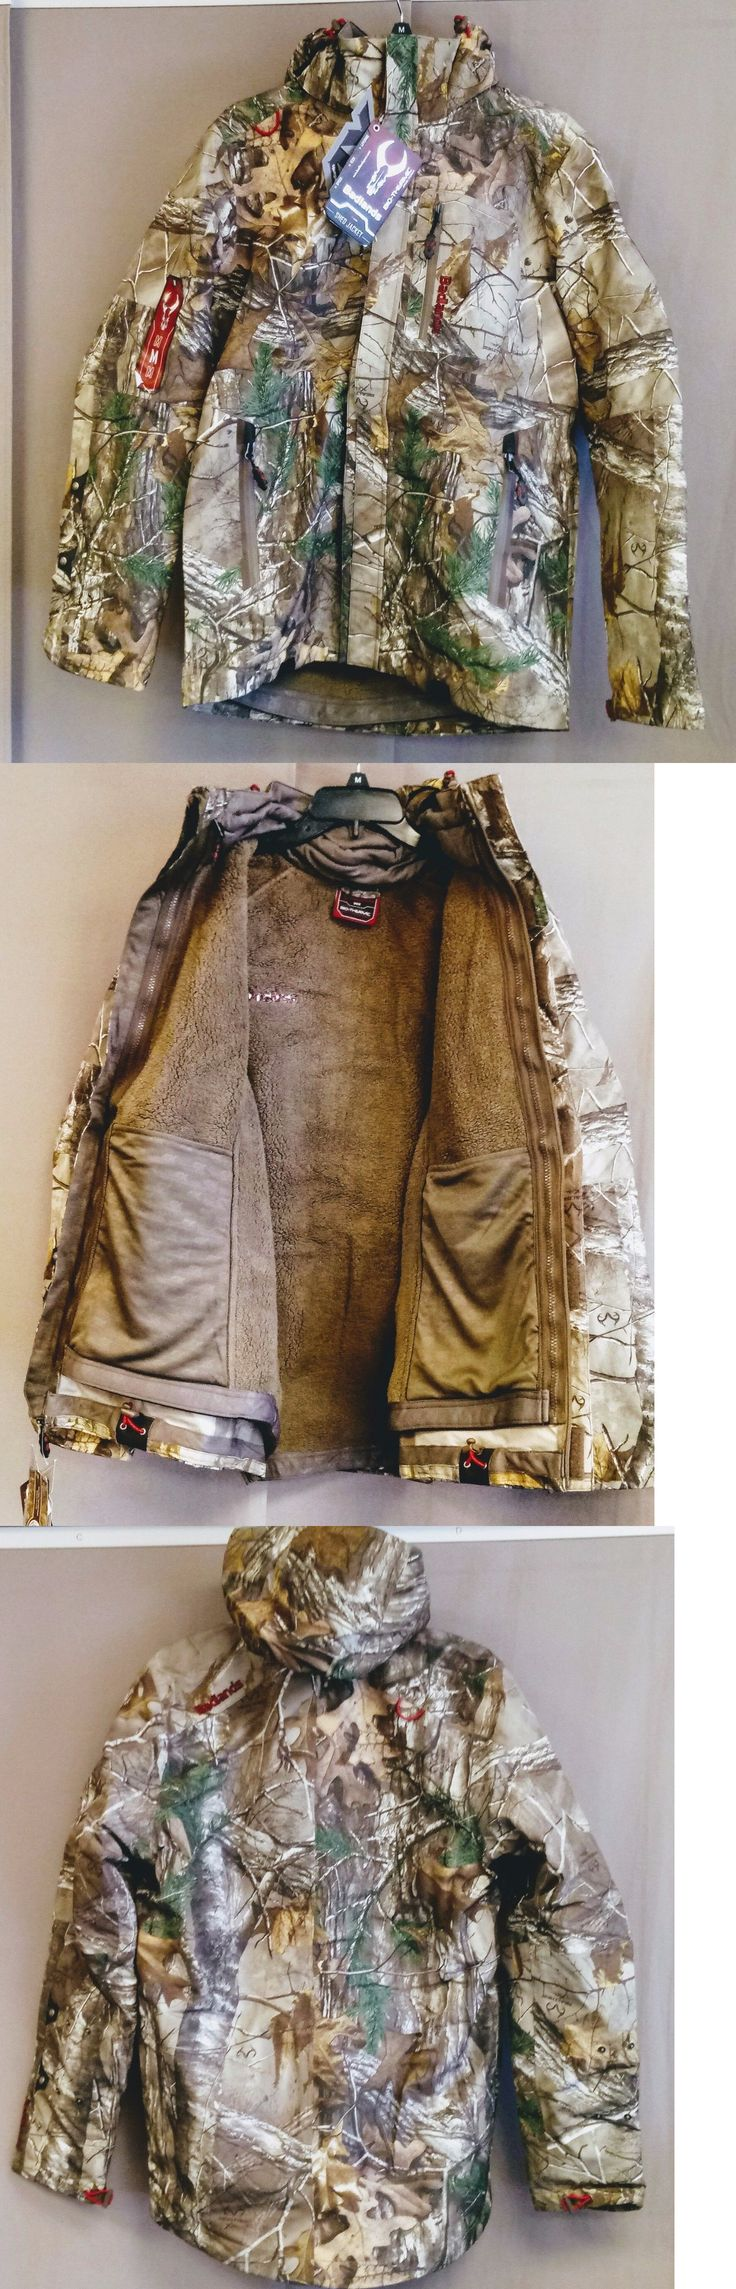 Coats and Jackets 177868: Badlands Bio-Thermic 3- In-1 Shed Jacket Realtree Camo -> BUY IT NOW ONLY: $114.24 on eBay!